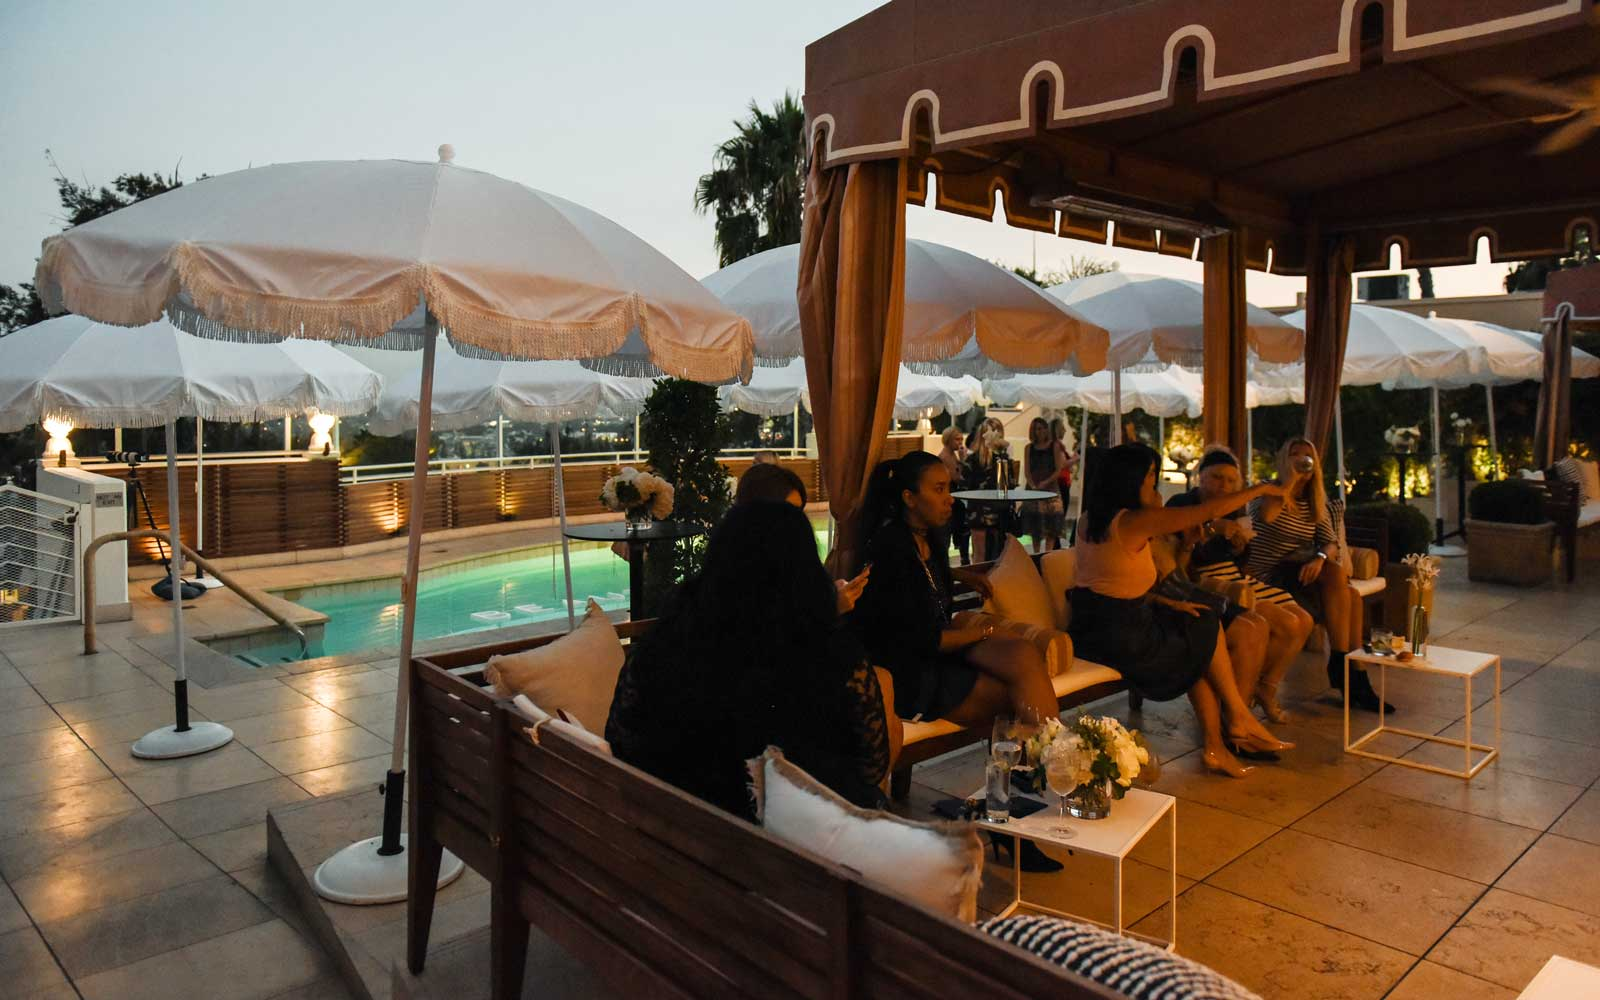 Beautycounter for Target launch, Sunset Tower Hotel, Los Angeles, USA - 30 Aug 2016